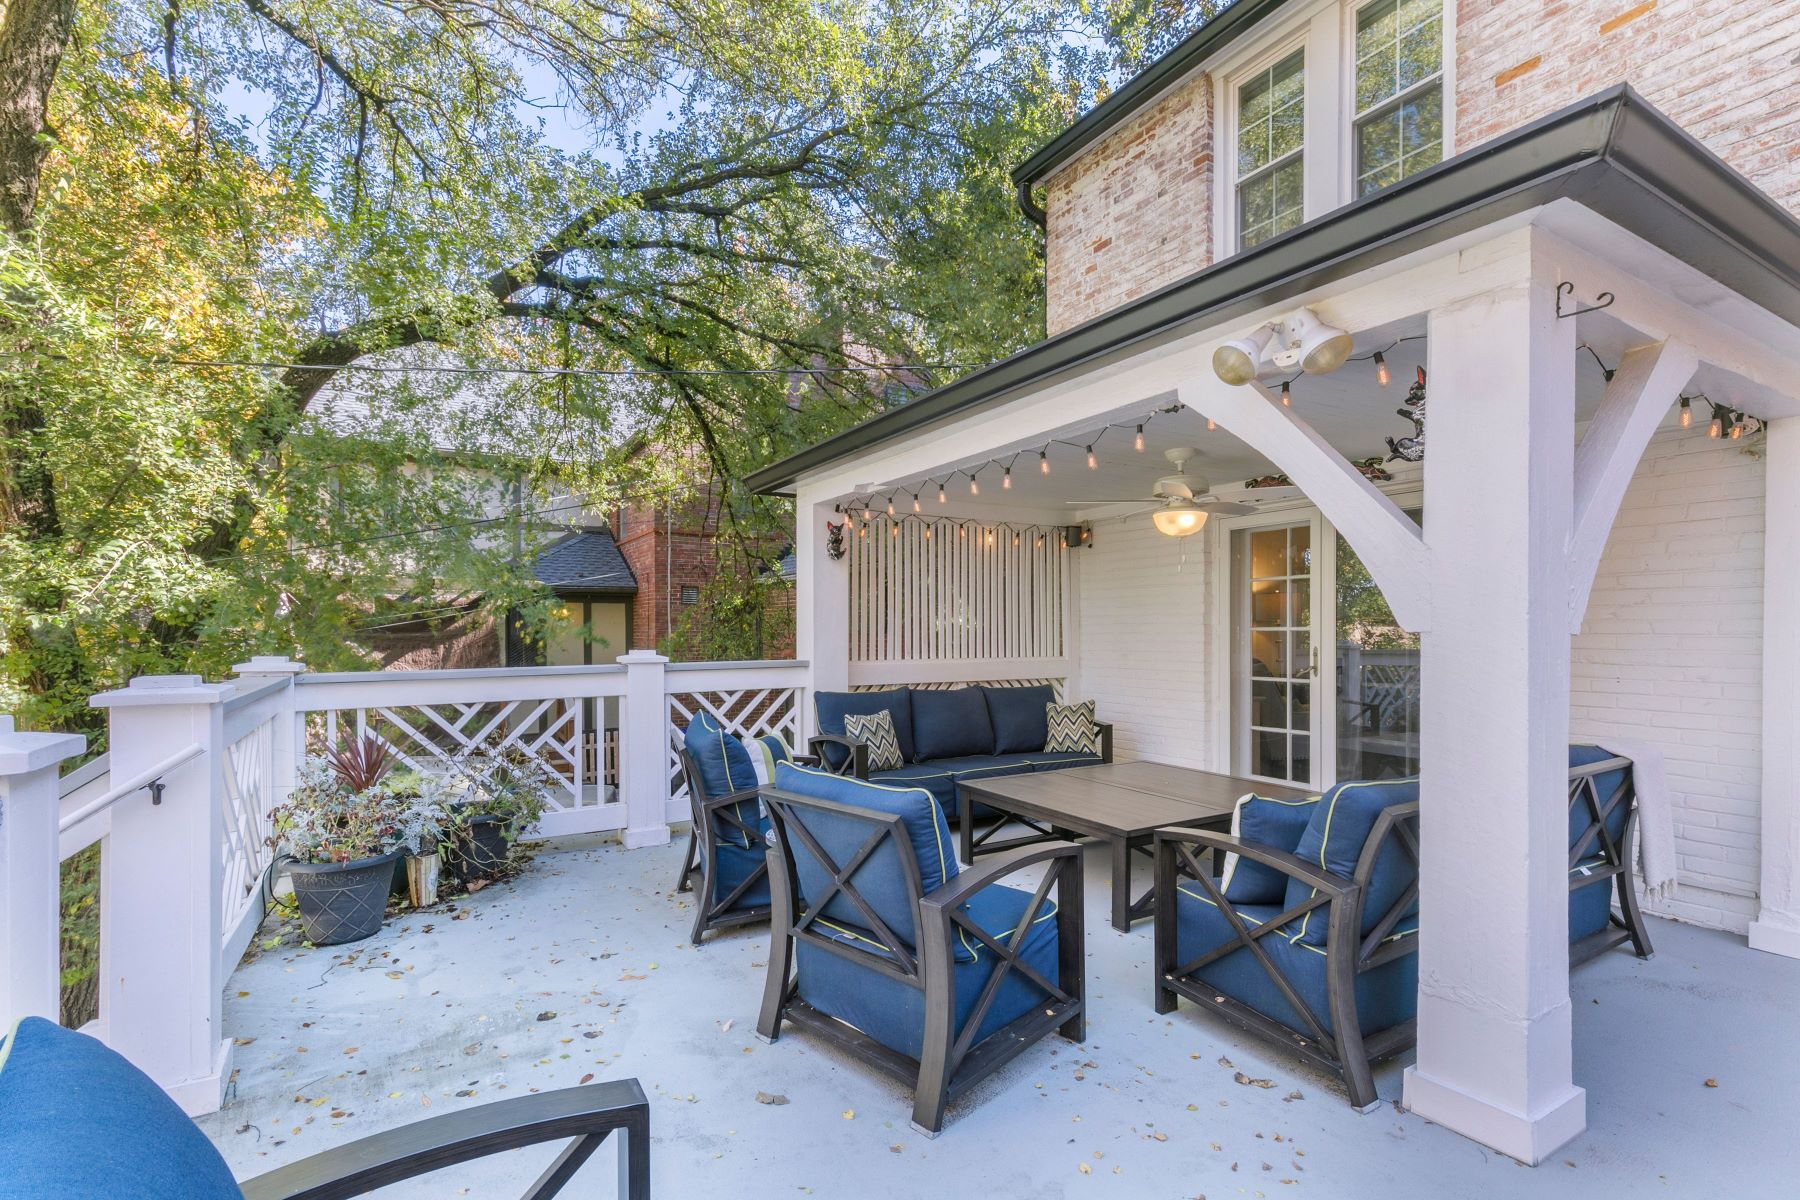 Additional photo for property listing at Old World Charm With Modern Elegance 7947 Gannon Avenue University City, Missouri 63130 United States